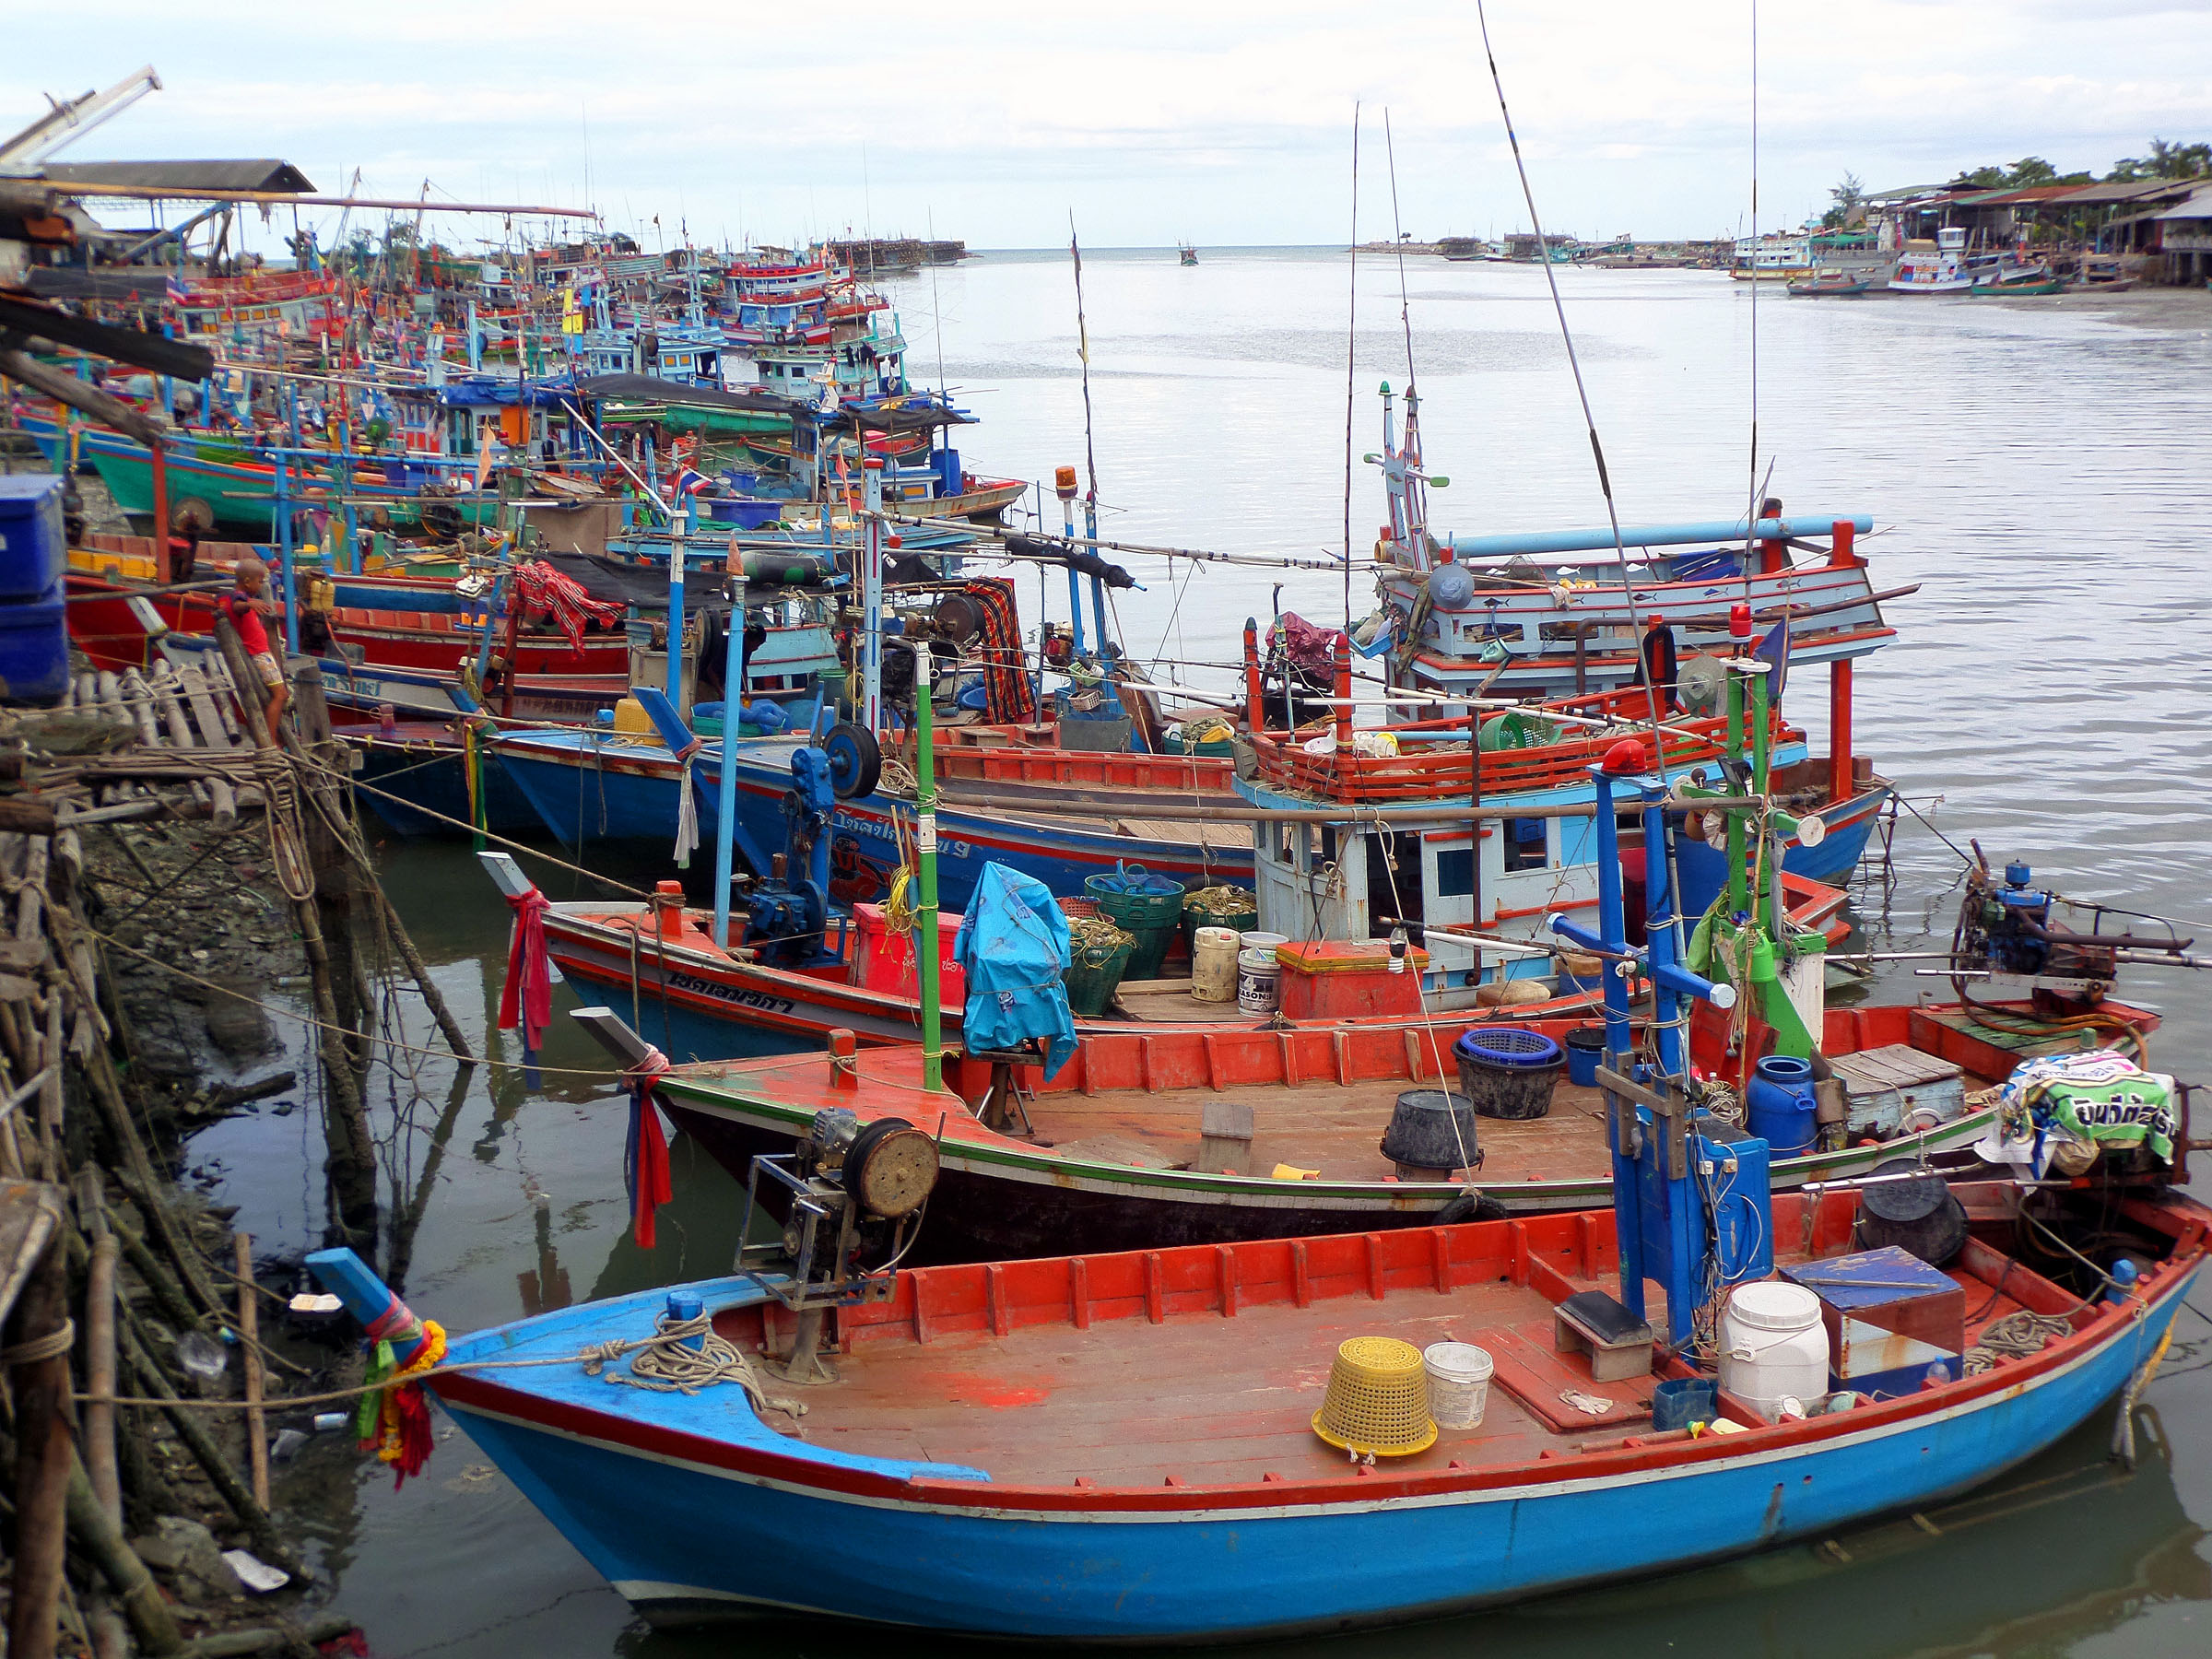 Moored Thai fishing boats, Beach, Boats, Chaam, Fishing, HQ Photo